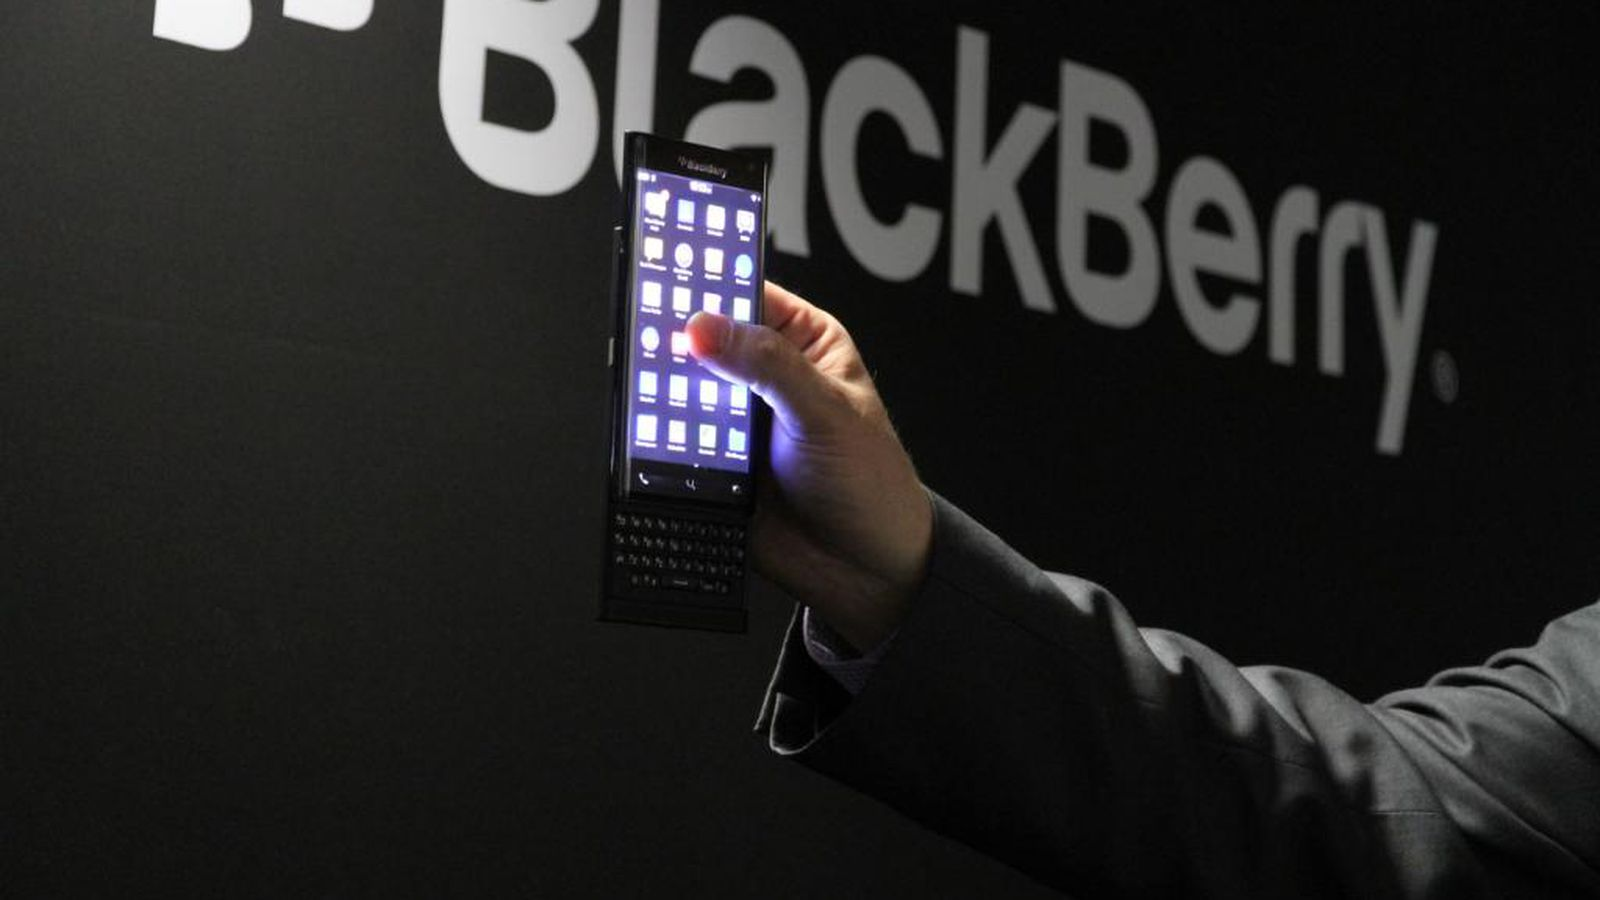 Phone Blackberry On Android Phone blackberry may release an android phone the verge